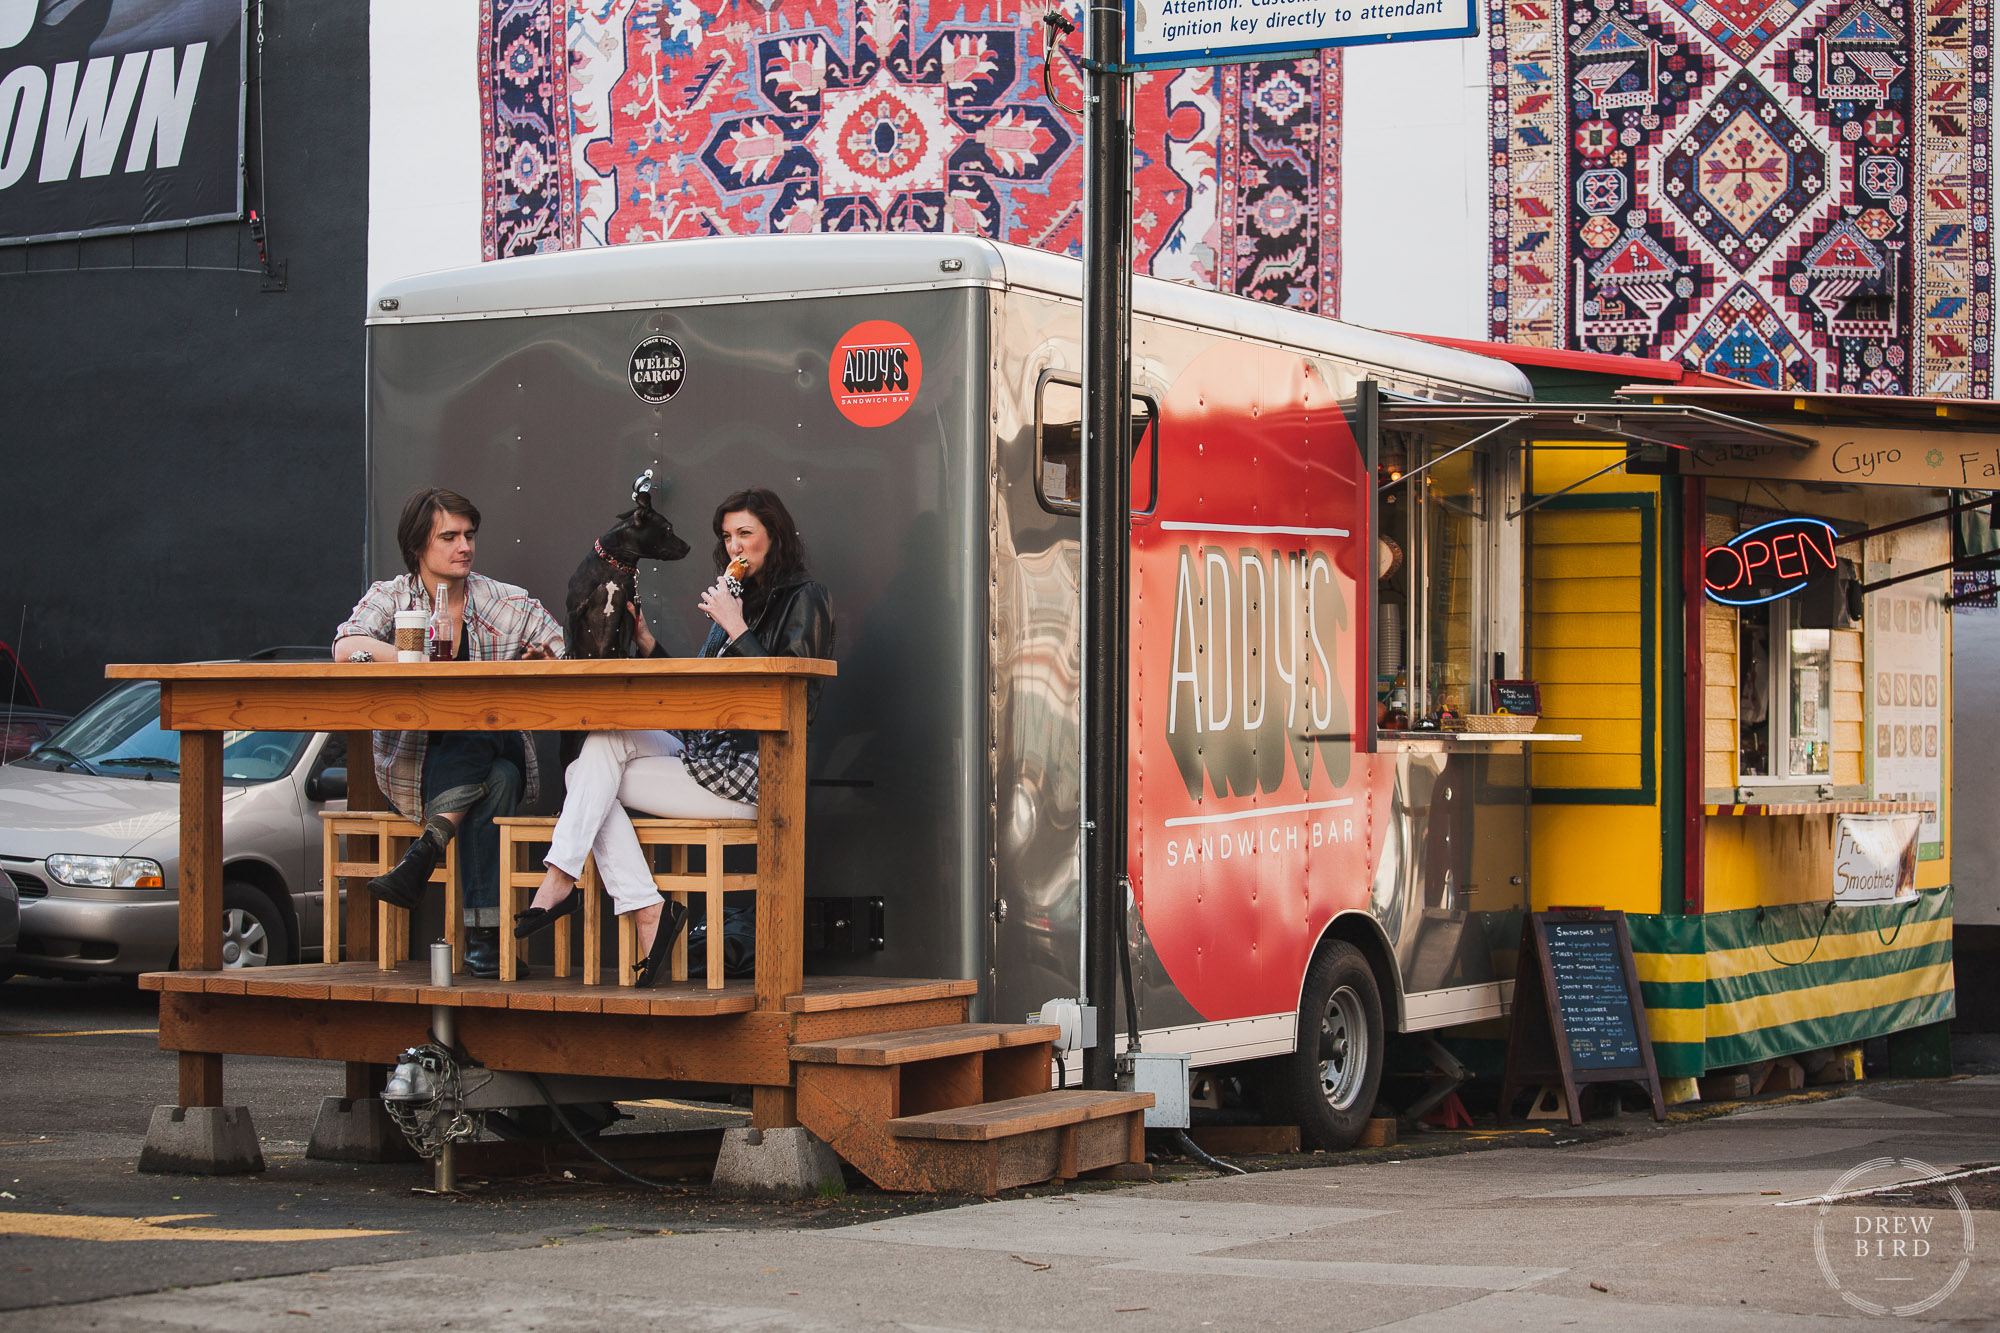 Portland Oregon food carts. Addie's sandwiches with a man and woman eating on a raised deck.